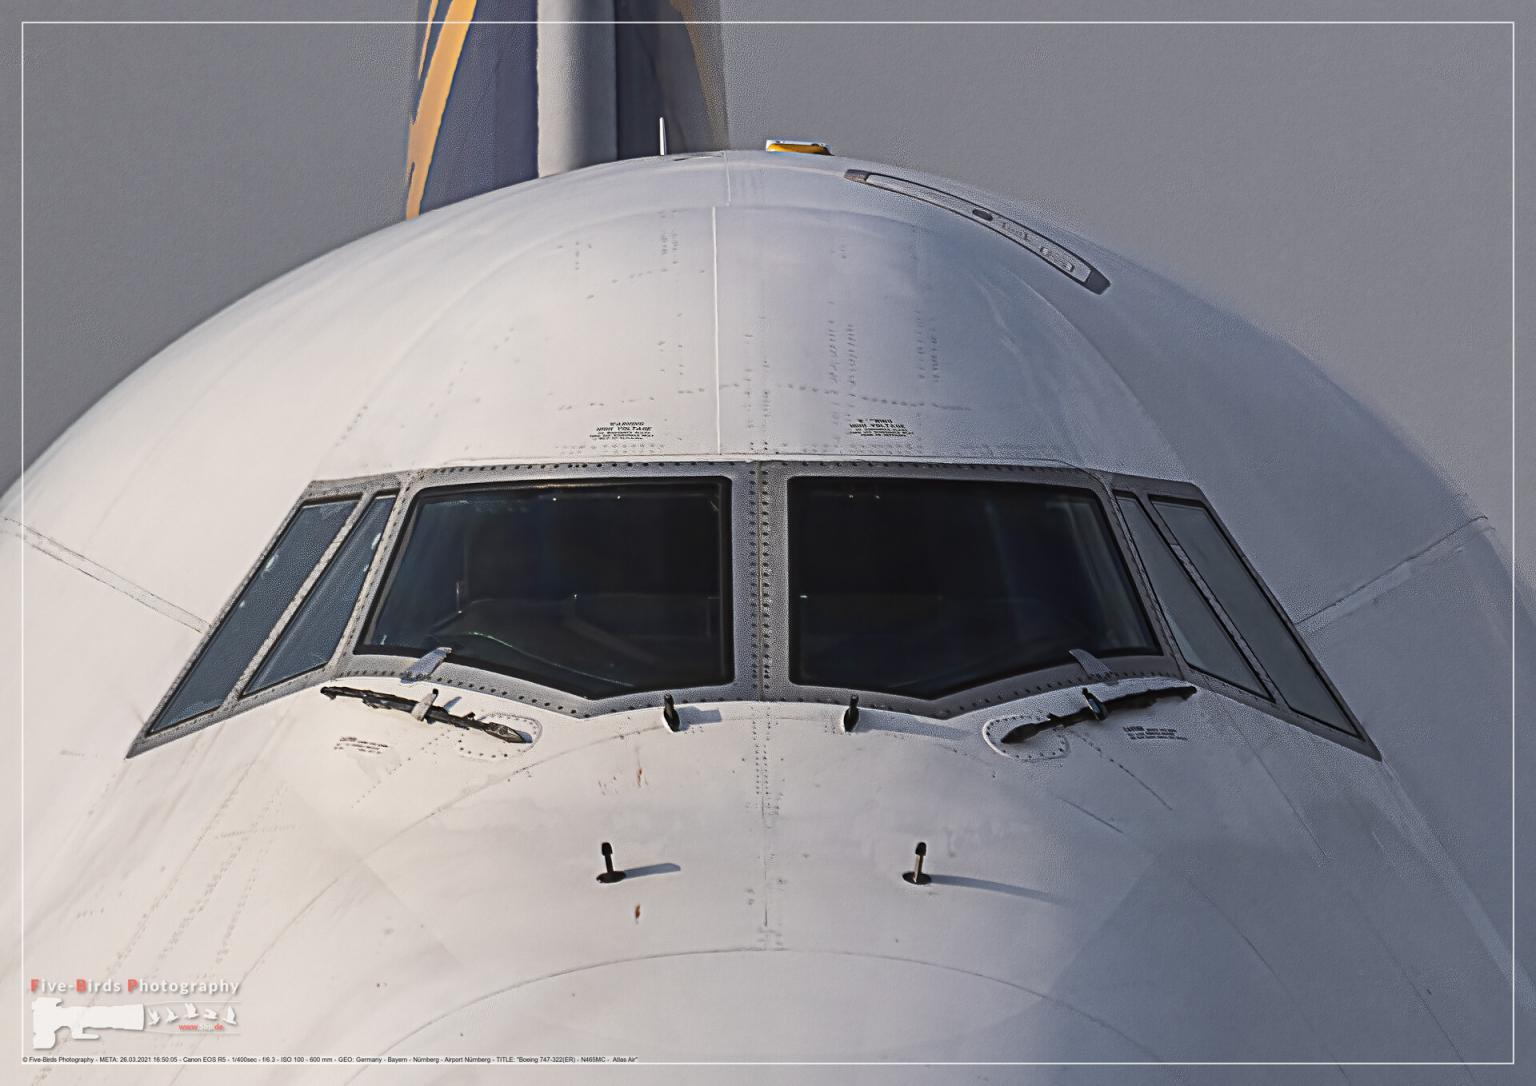 Boeing 747-322 at parking position at Nuremberg airport